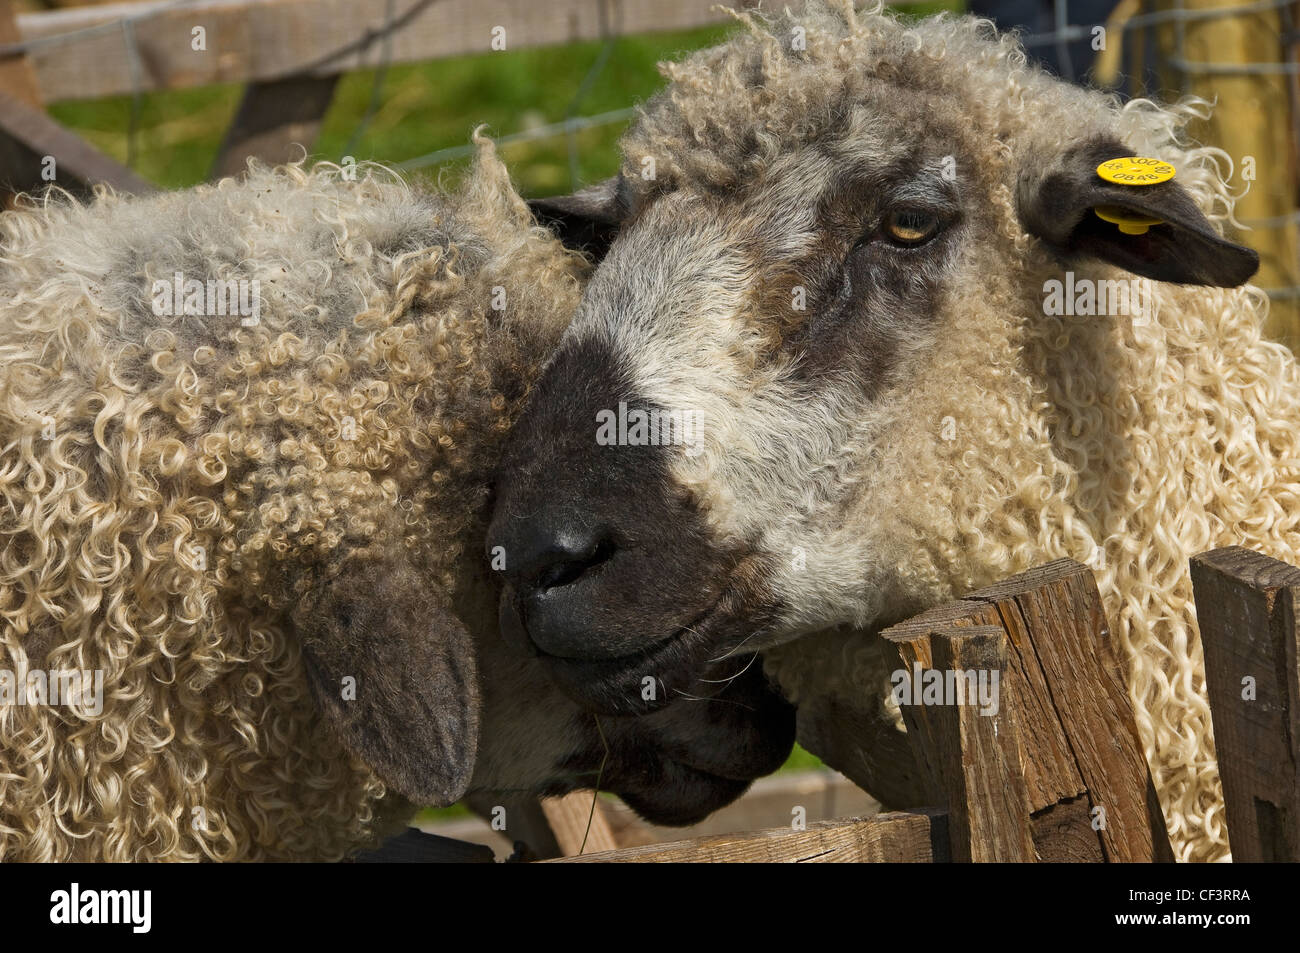 Close up of sheep at Gargrave Show, an annual country show near Skipton. - Stock Image